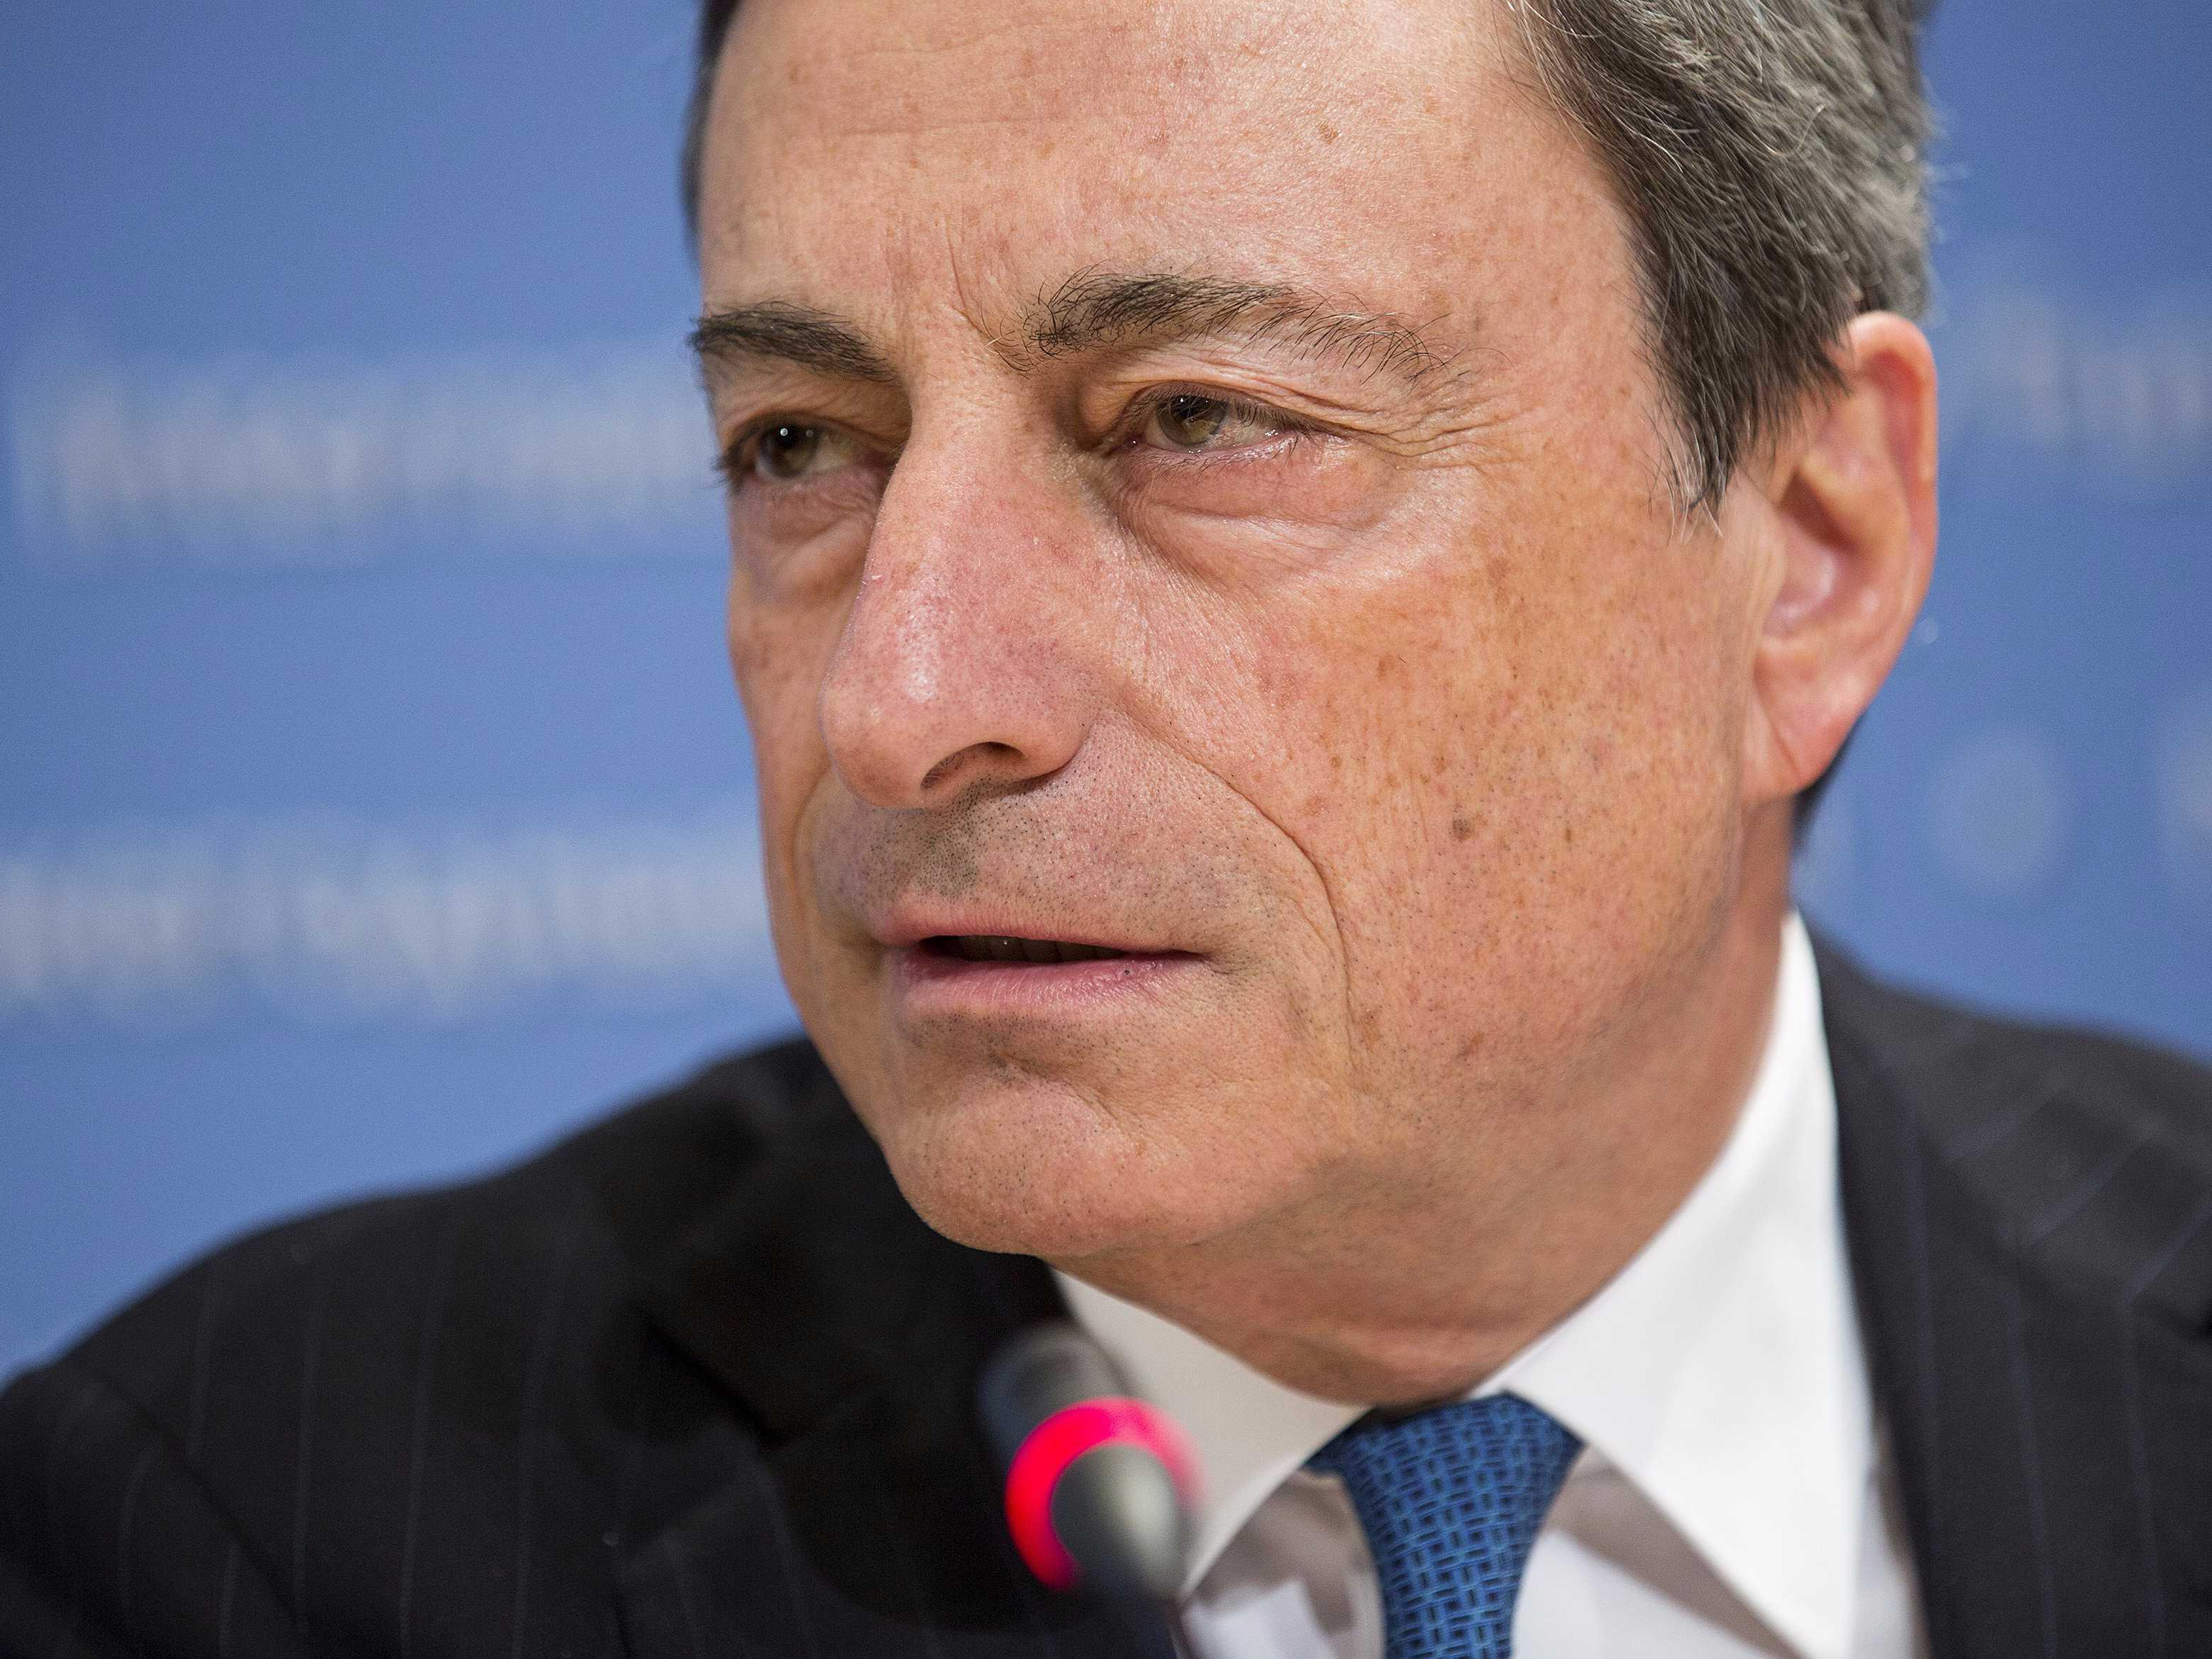 Fortune Magazine says Mario Draghi is the world's second-best leader